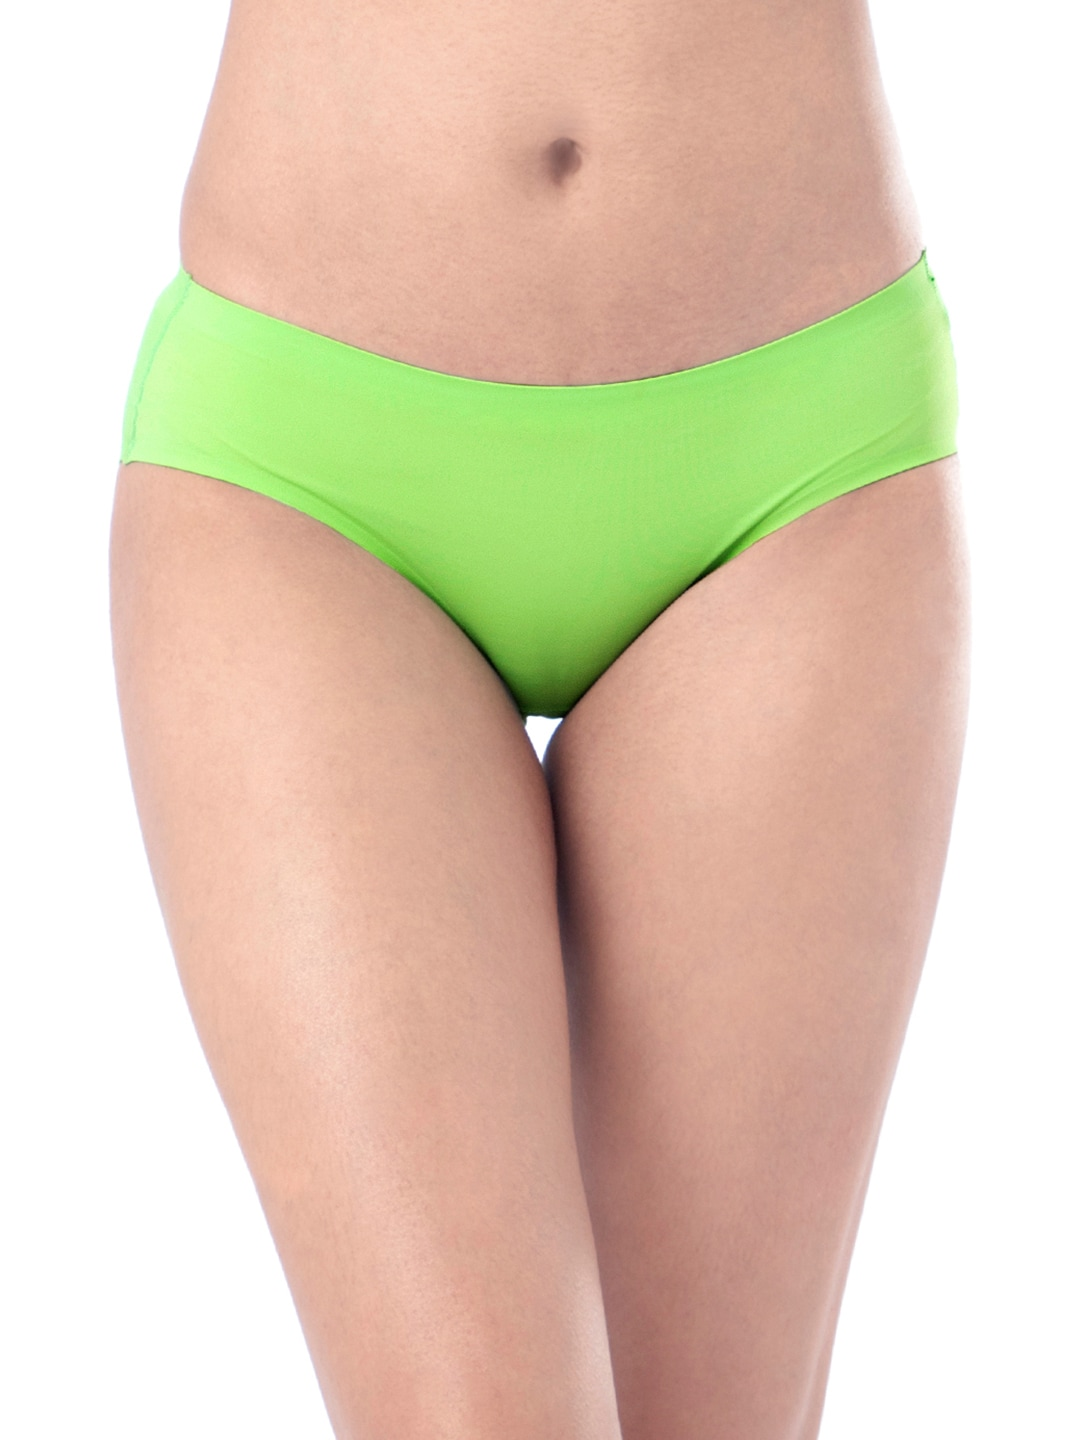 4b079a5400dd7 Panties - Buy Underwear   Panties for Women Online in India - Myntra